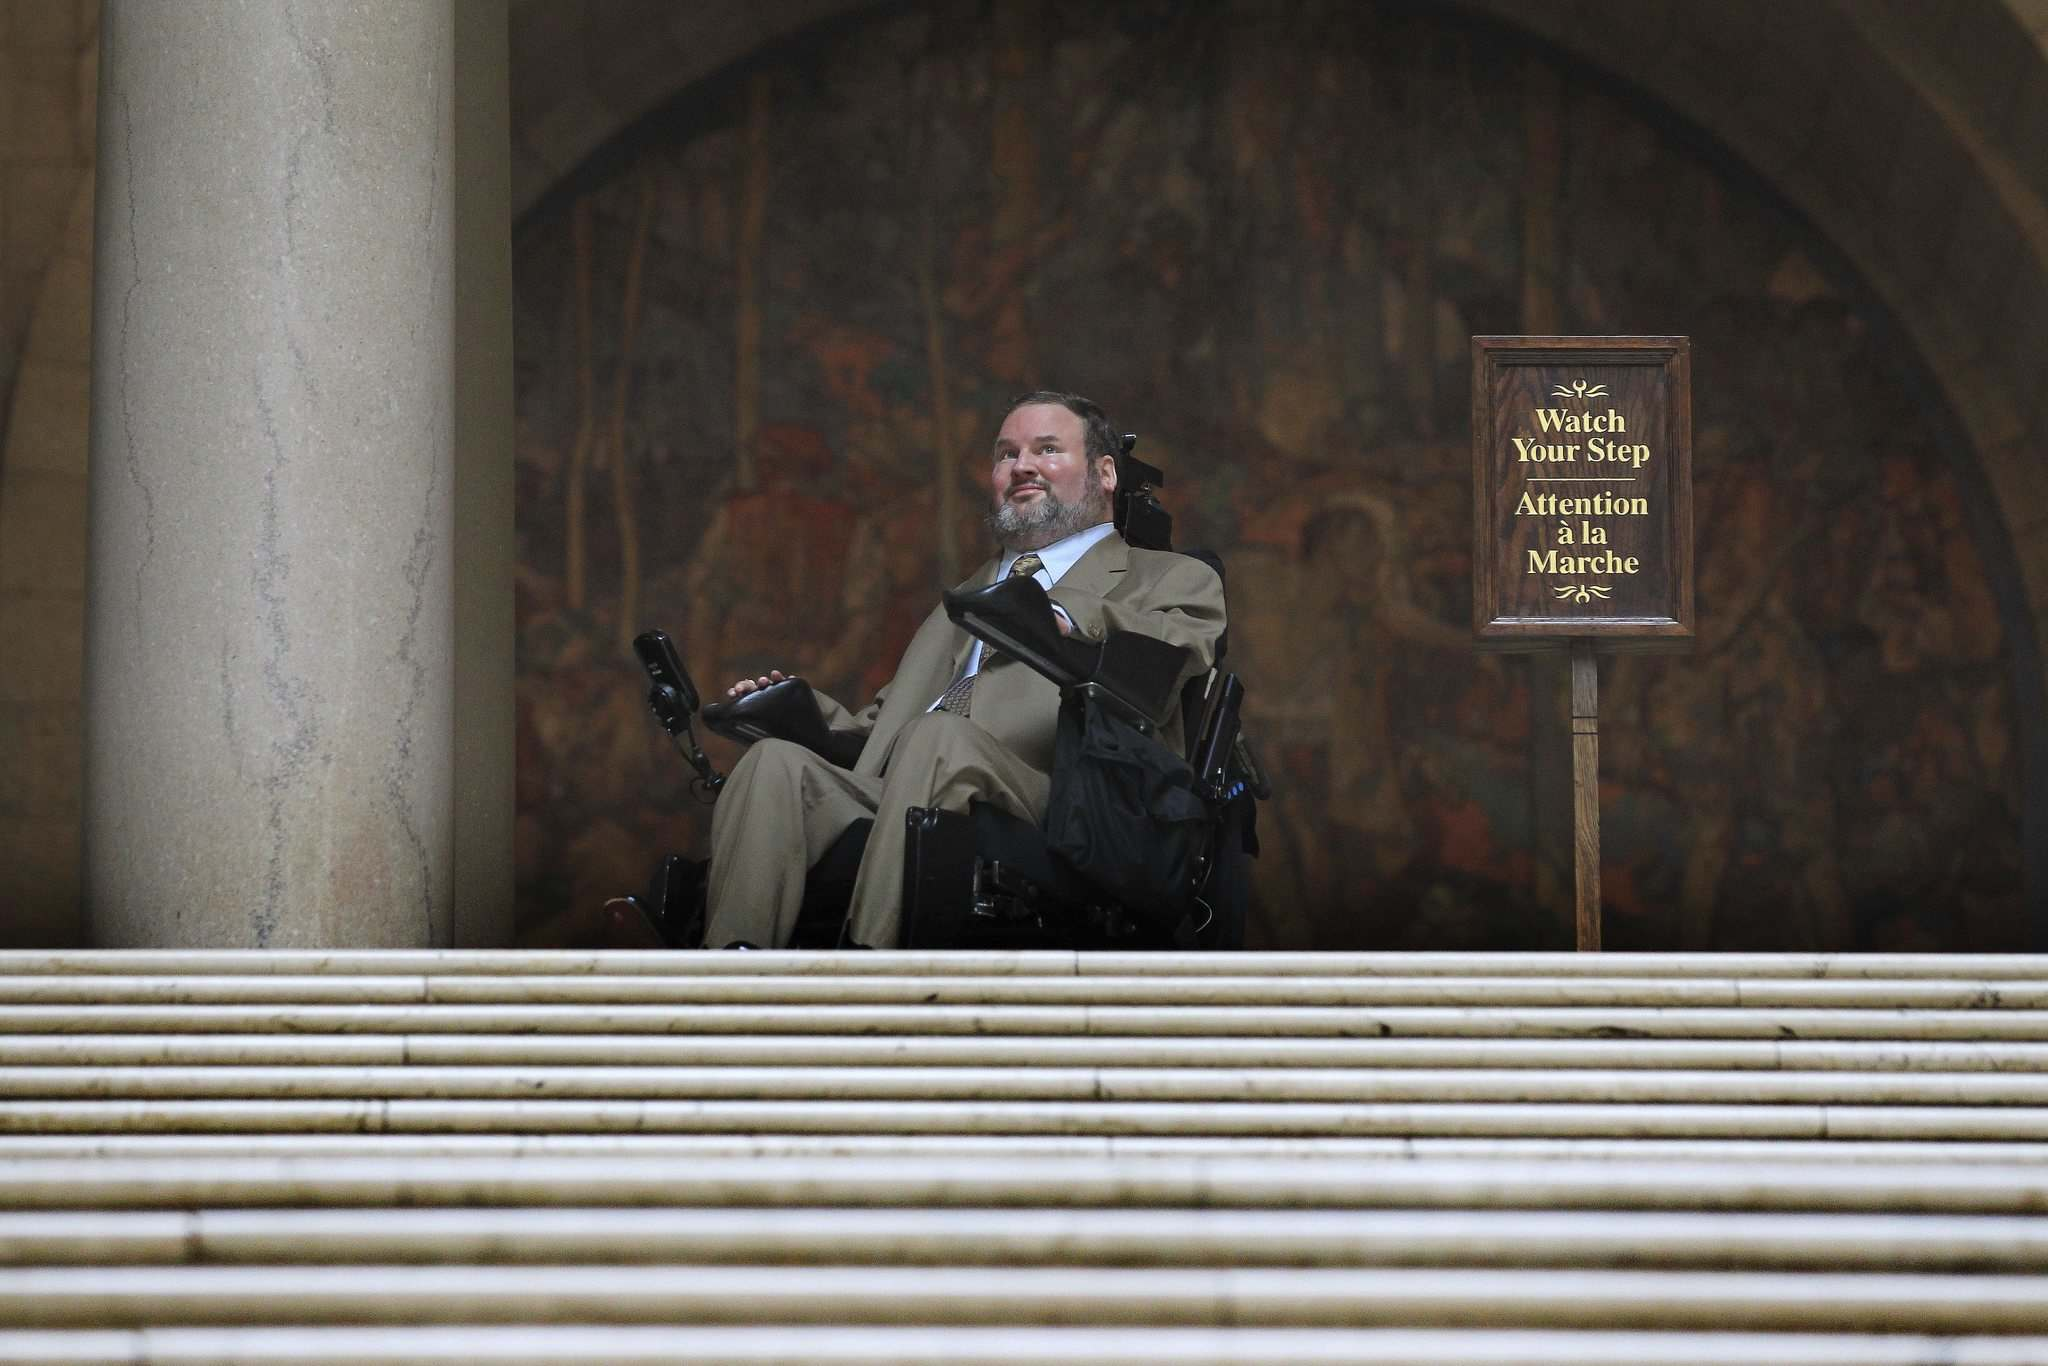 RUTH BONNEVILLE / WINNIPEG FREE PRESS</p><p>Assiniboia MLA Steven Fletcher, stops at the top of the stairs in the Legislative Building Tuesday morning after challenging plans for renovating the chamber to accommodate wheelchair access.</p>